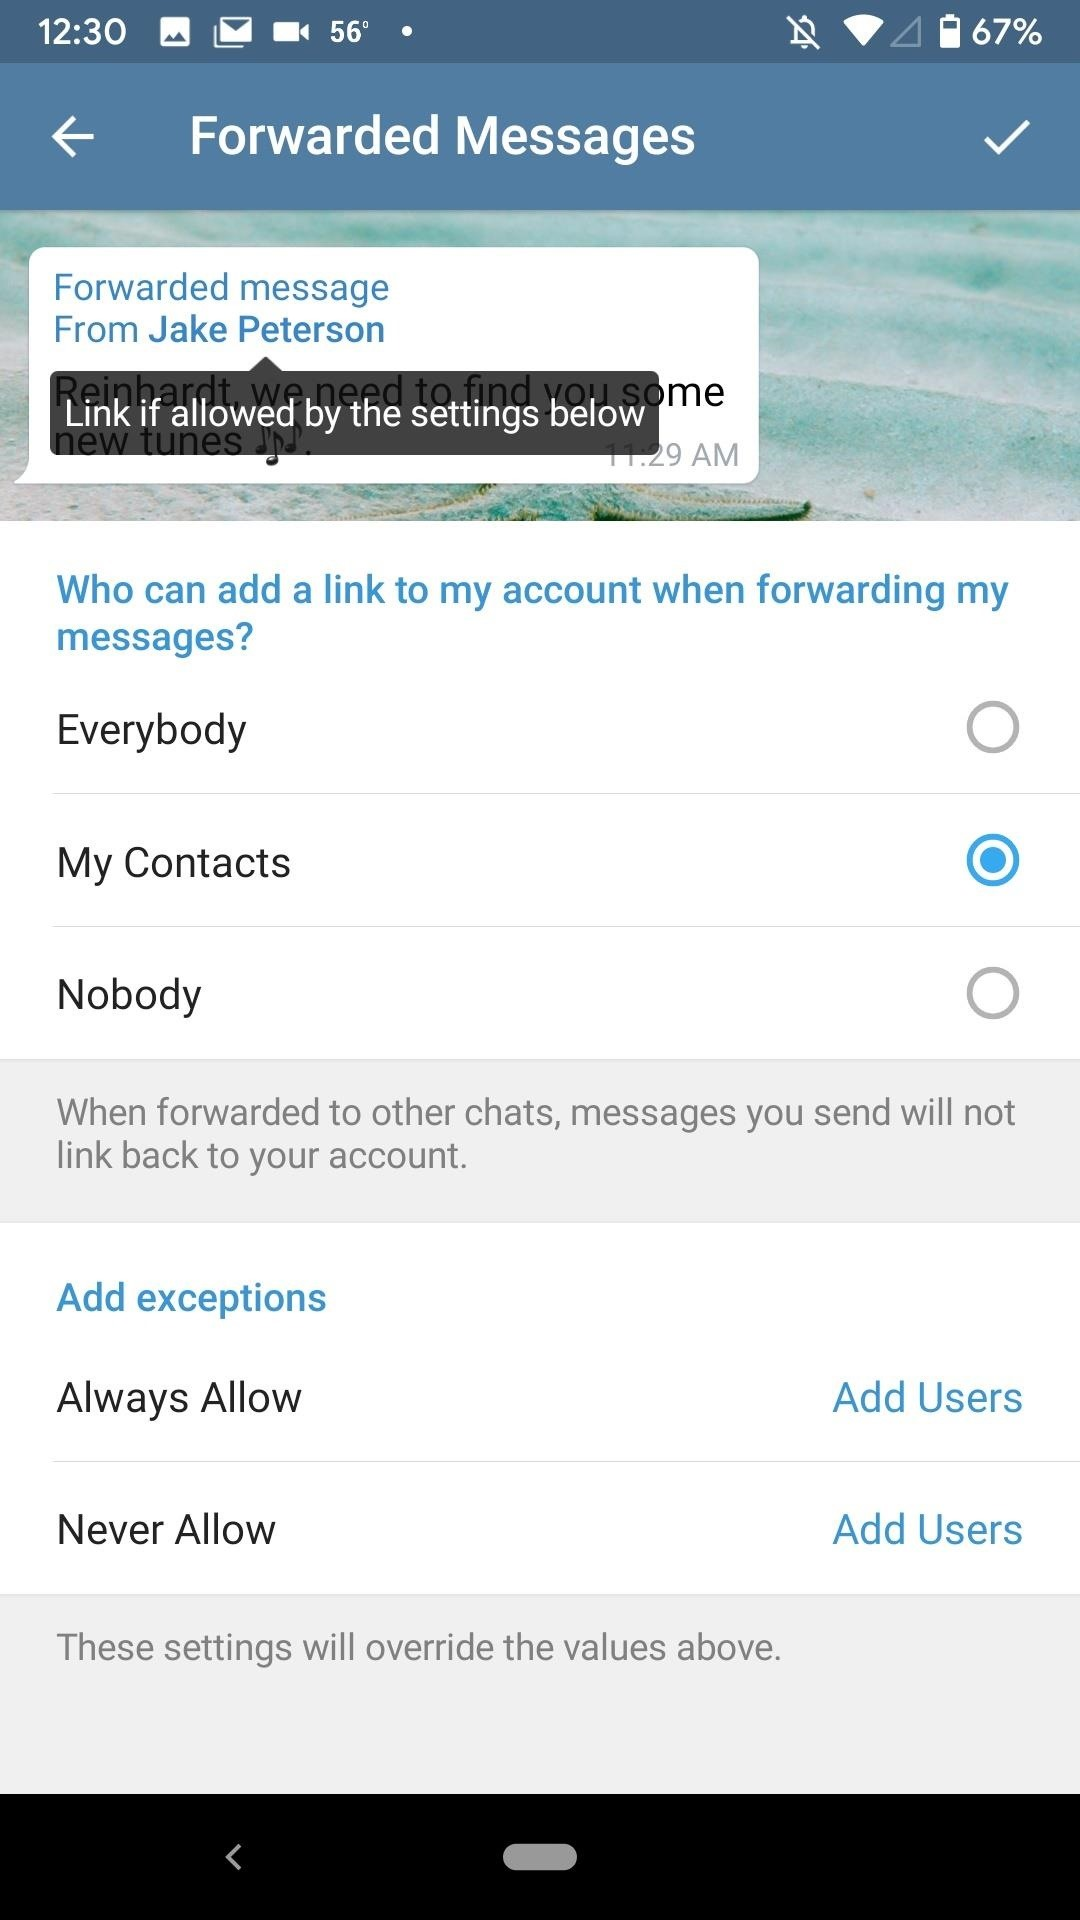 Prevent others from sharing the link to your telegram account when forwarding your messages.